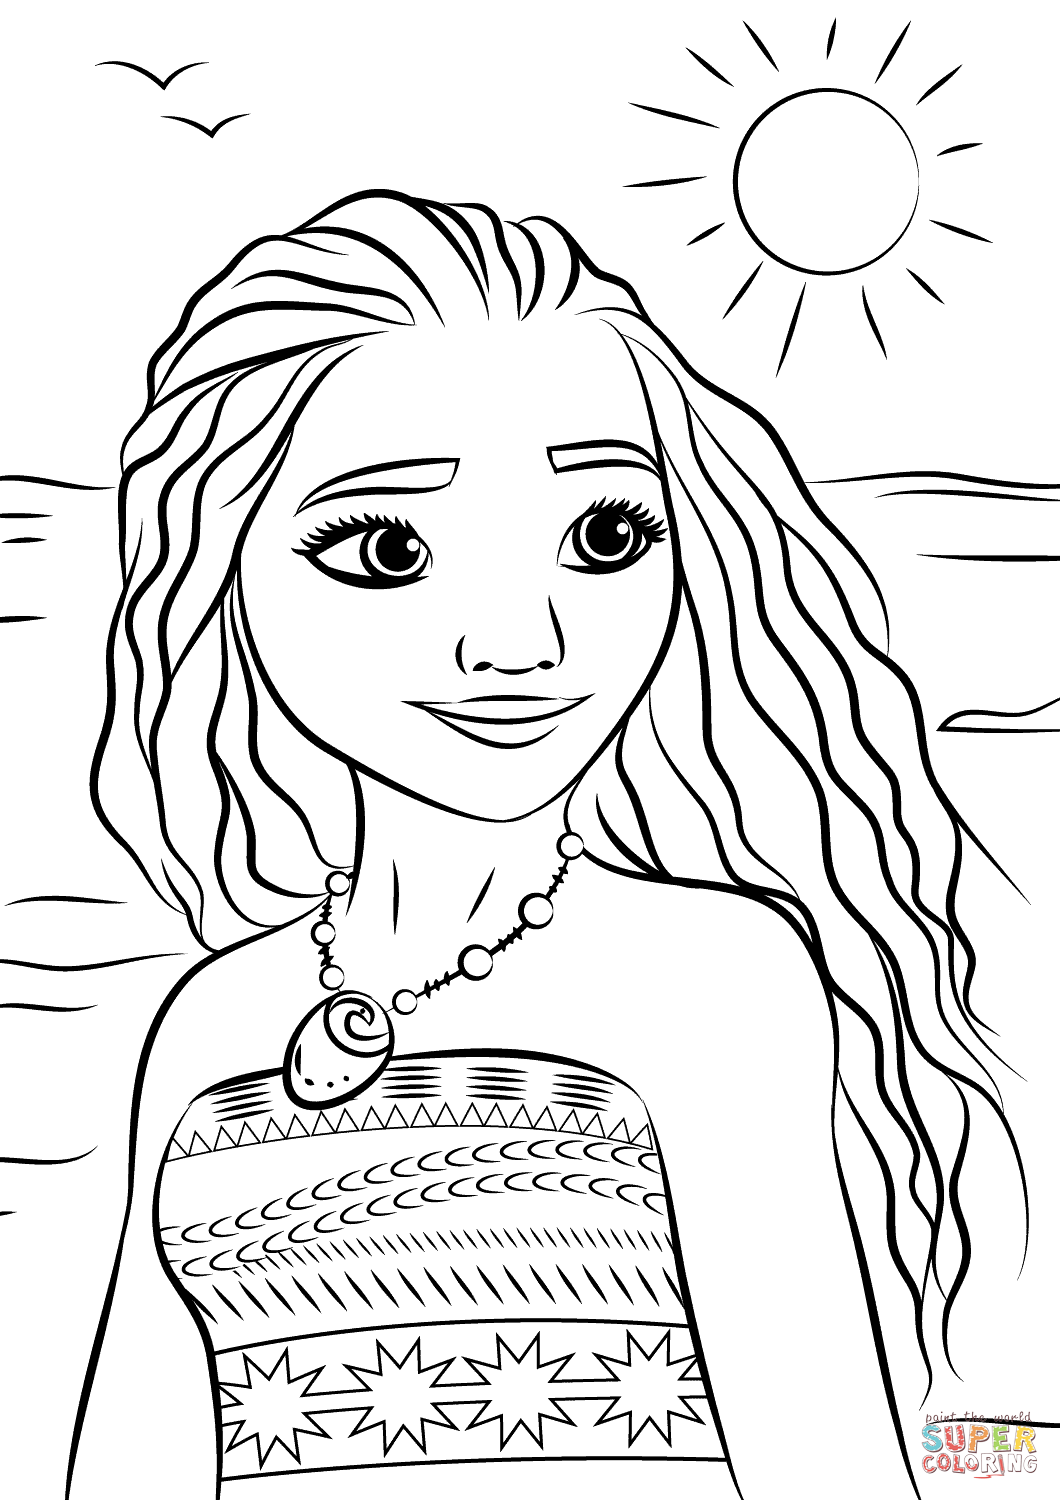 free moana coloring pages moana coloring pages best coloring pages for kids free coloring moana pages